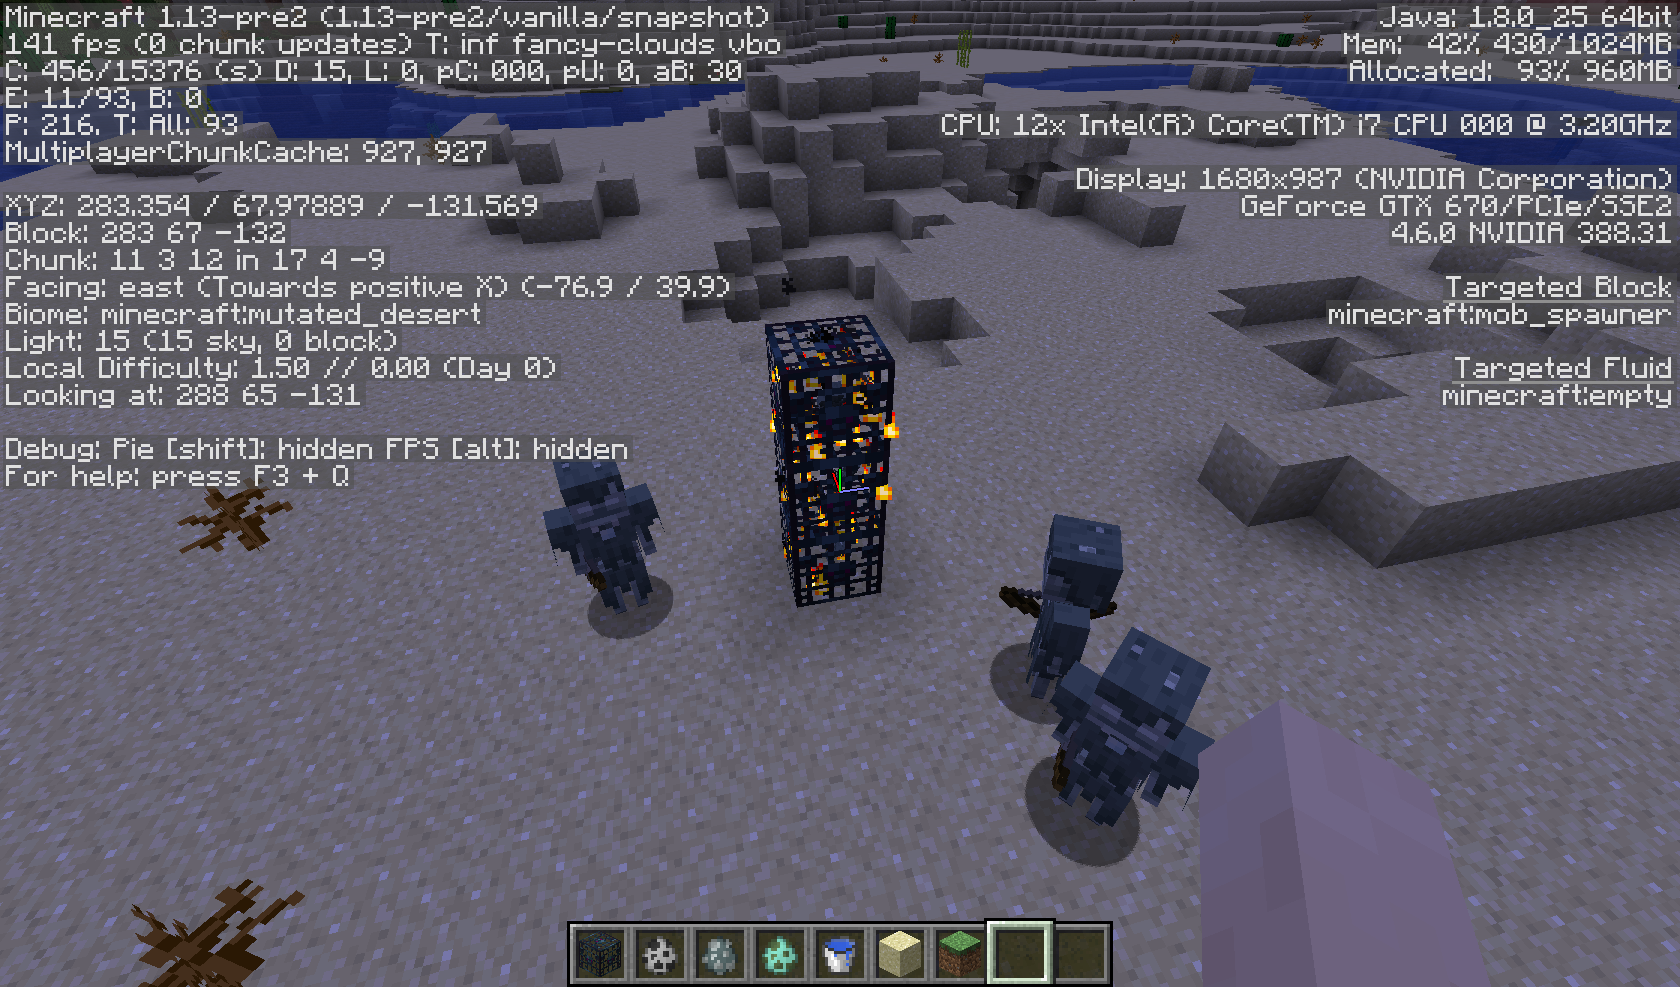 MC-131646] Drowned spawner is location specific - Jira